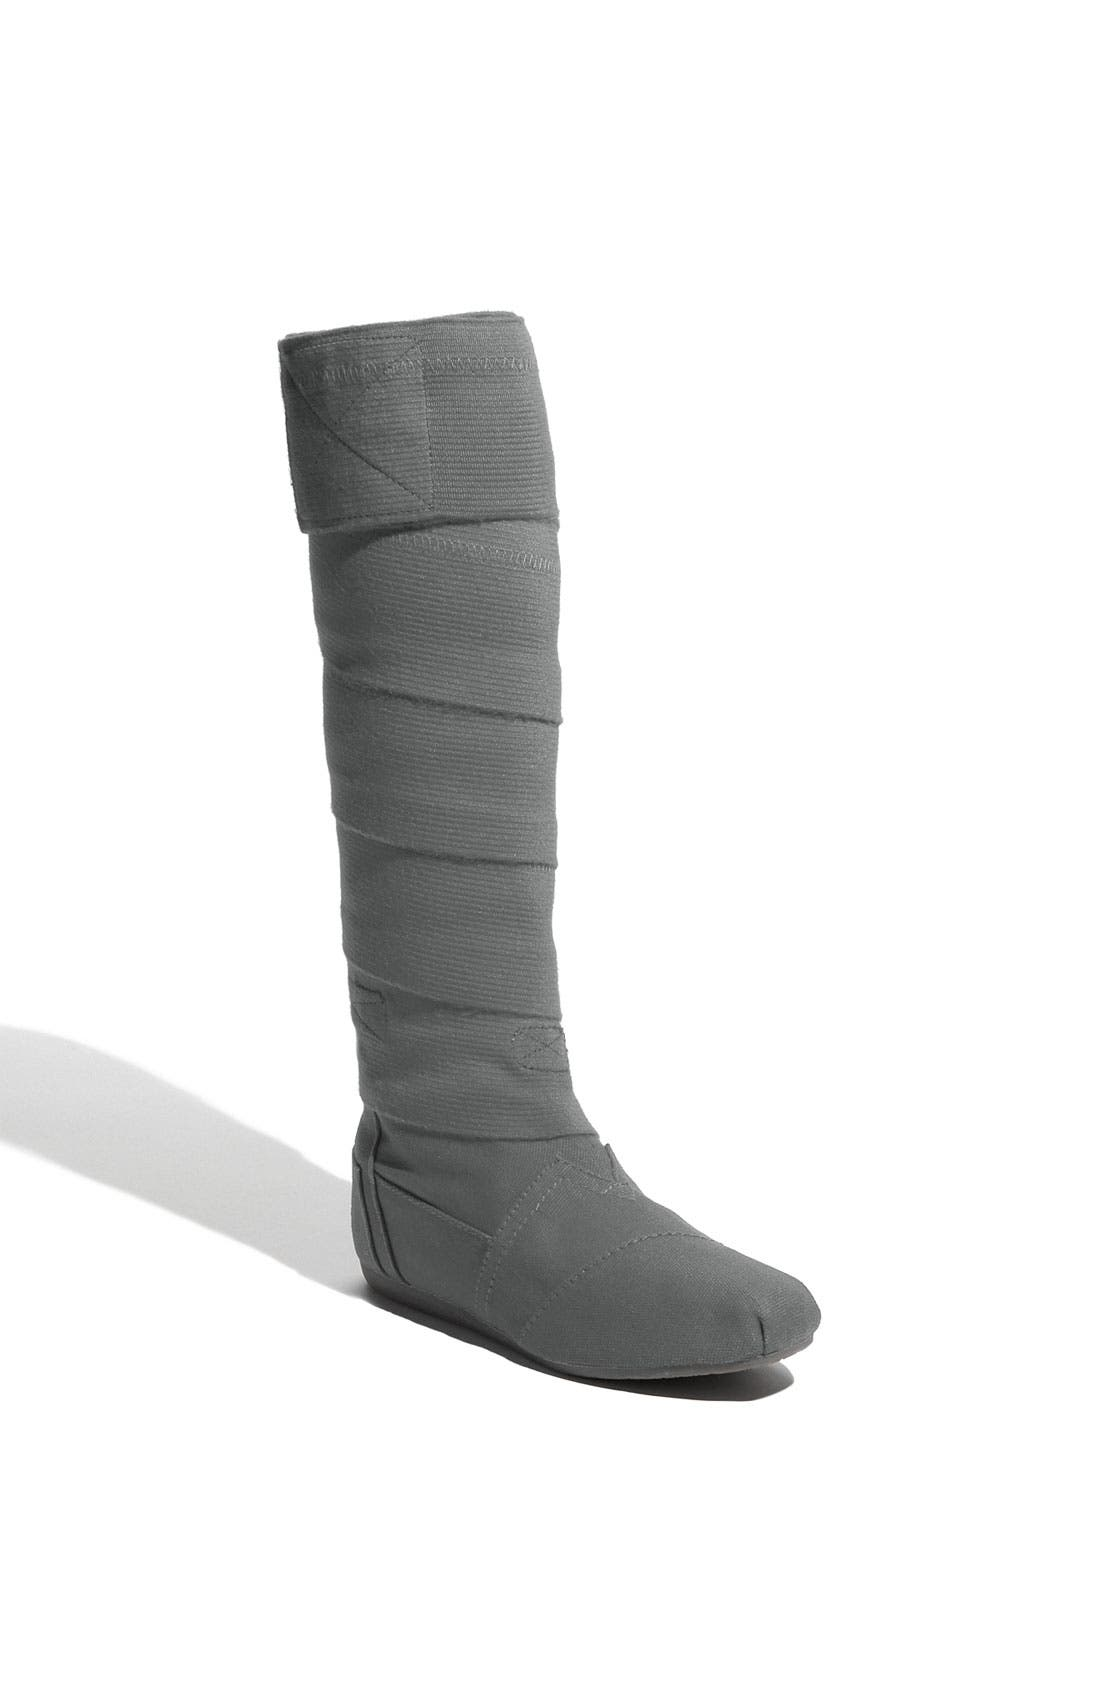 Alternate Image 1 Selected - TOMS 'Wrap' Boot (Women)